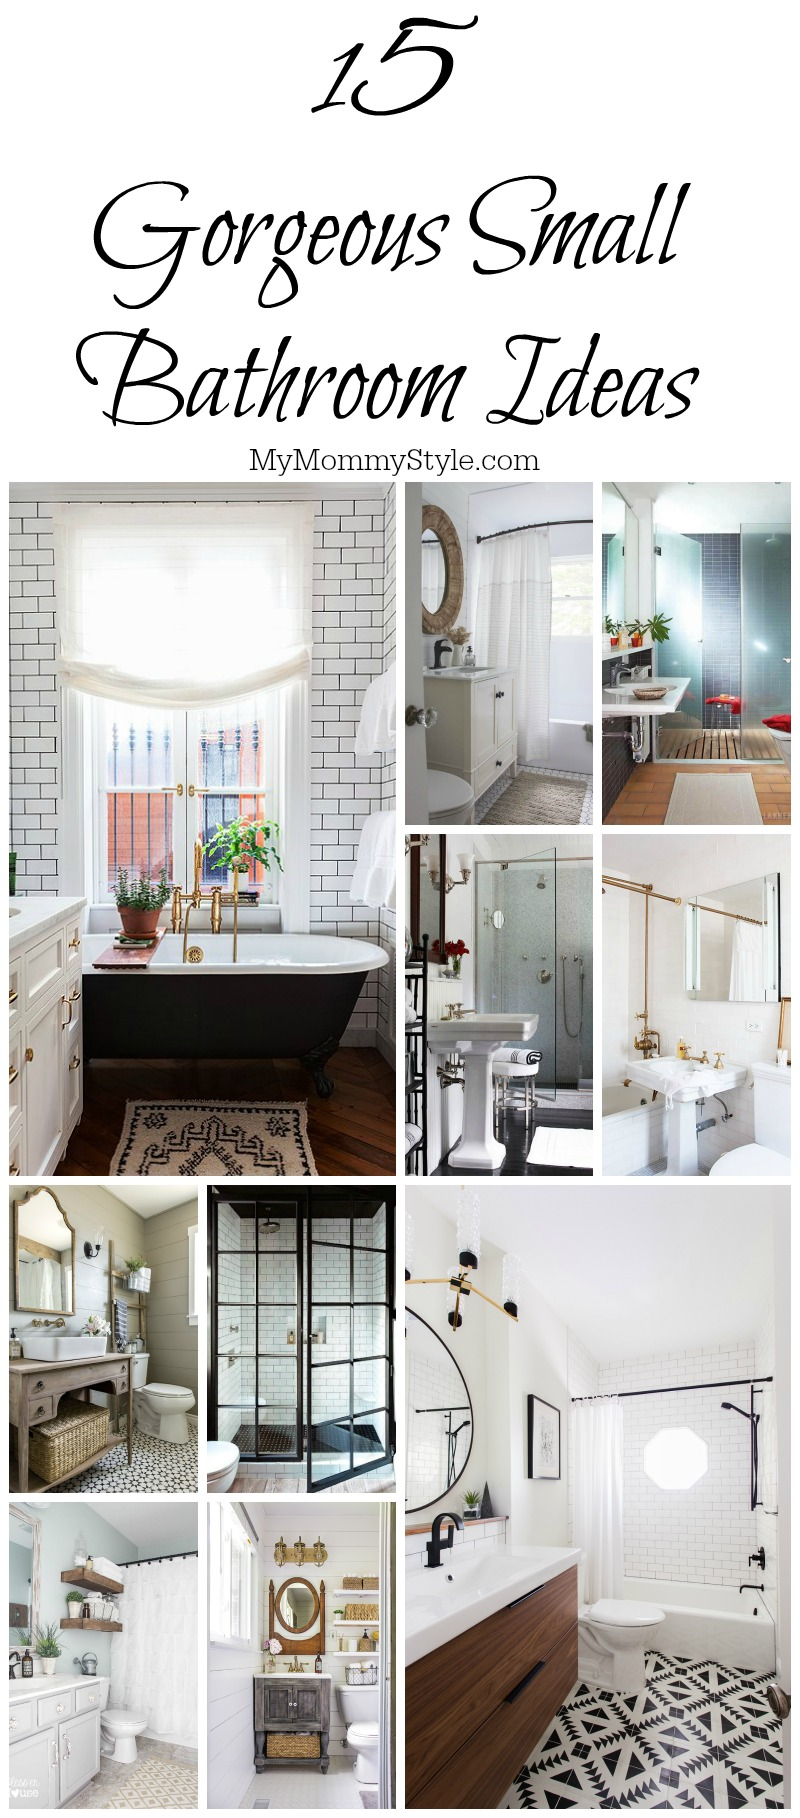 25 beautiful master bedroom ideas - My Mommy Style on Simple:zvjxpw8Nmfo= Small Bathroom Ideas  id=77622